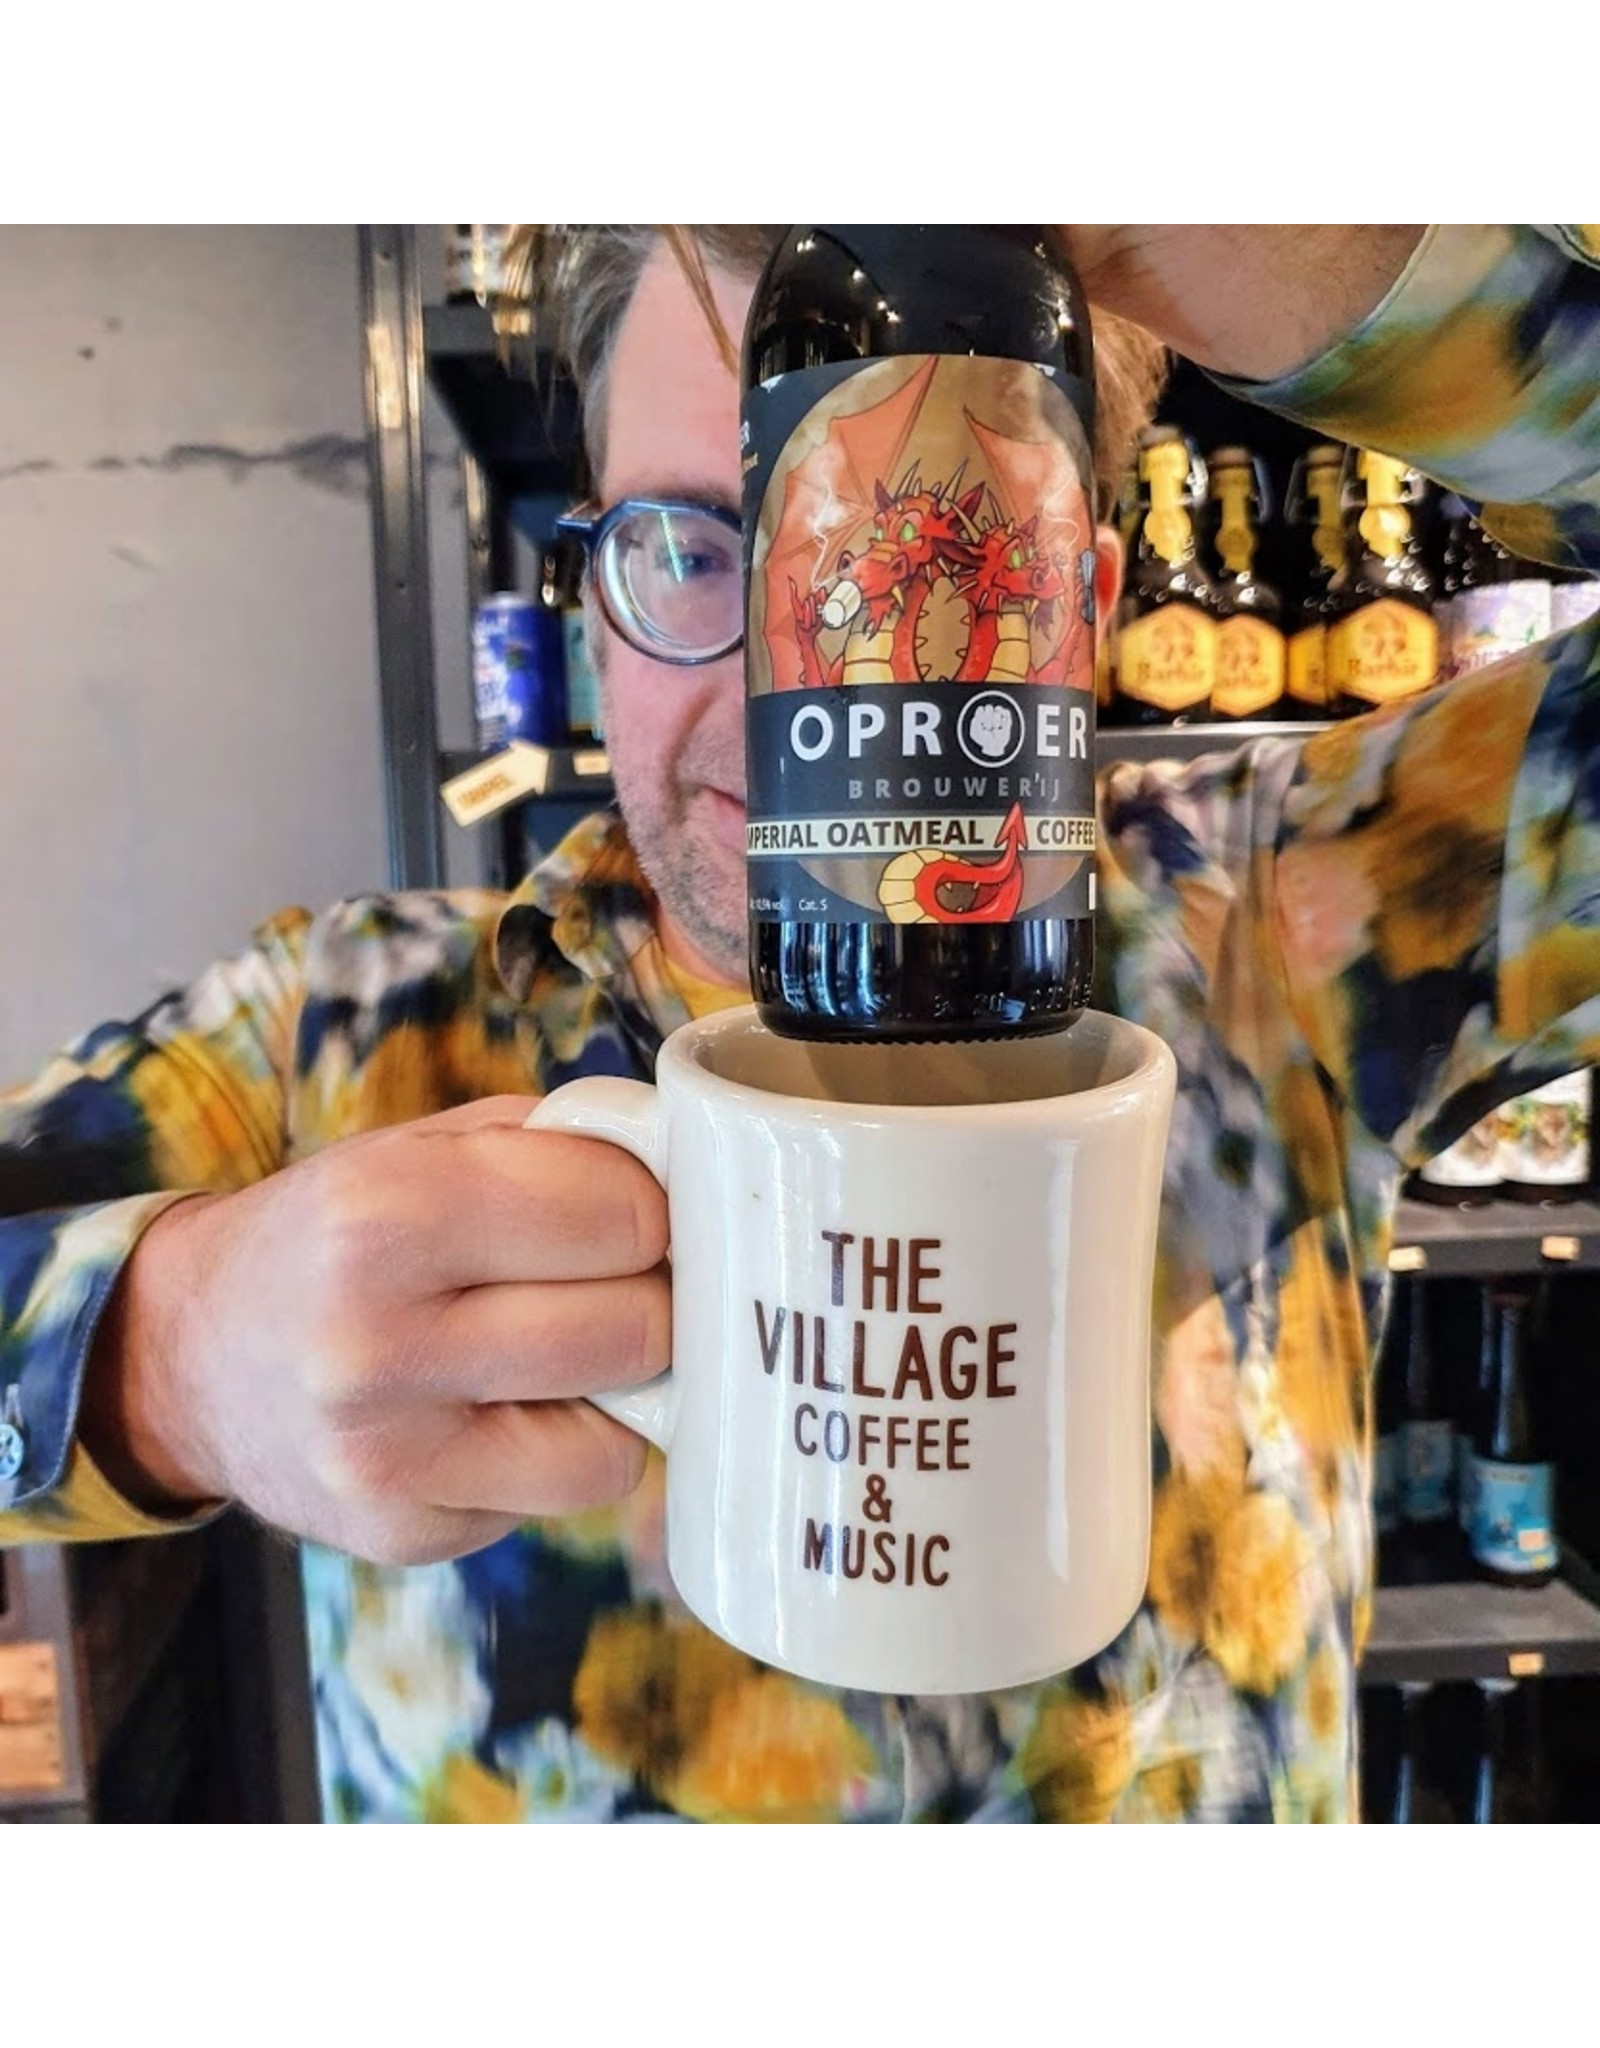 Oproer X the Village: Imperial Oatmeal Coffee Stout